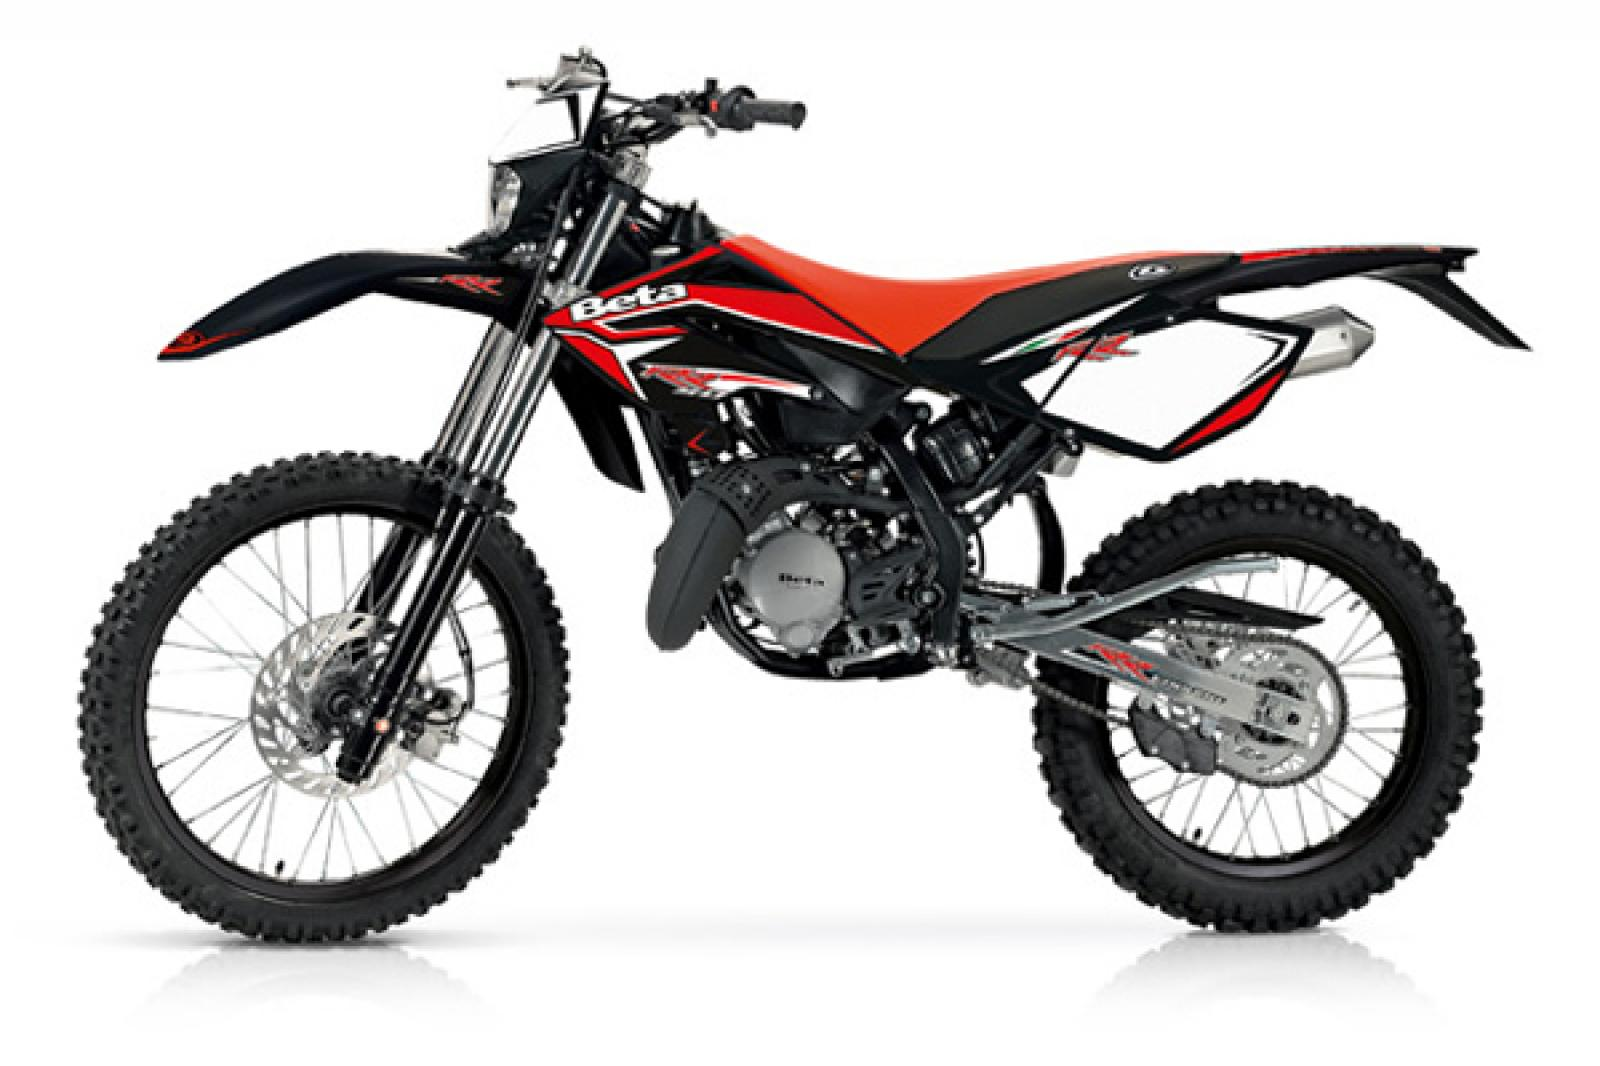 2010 beta rr enduro 50 moto zombdrive com. Black Bedroom Furniture Sets. Home Design Ideas